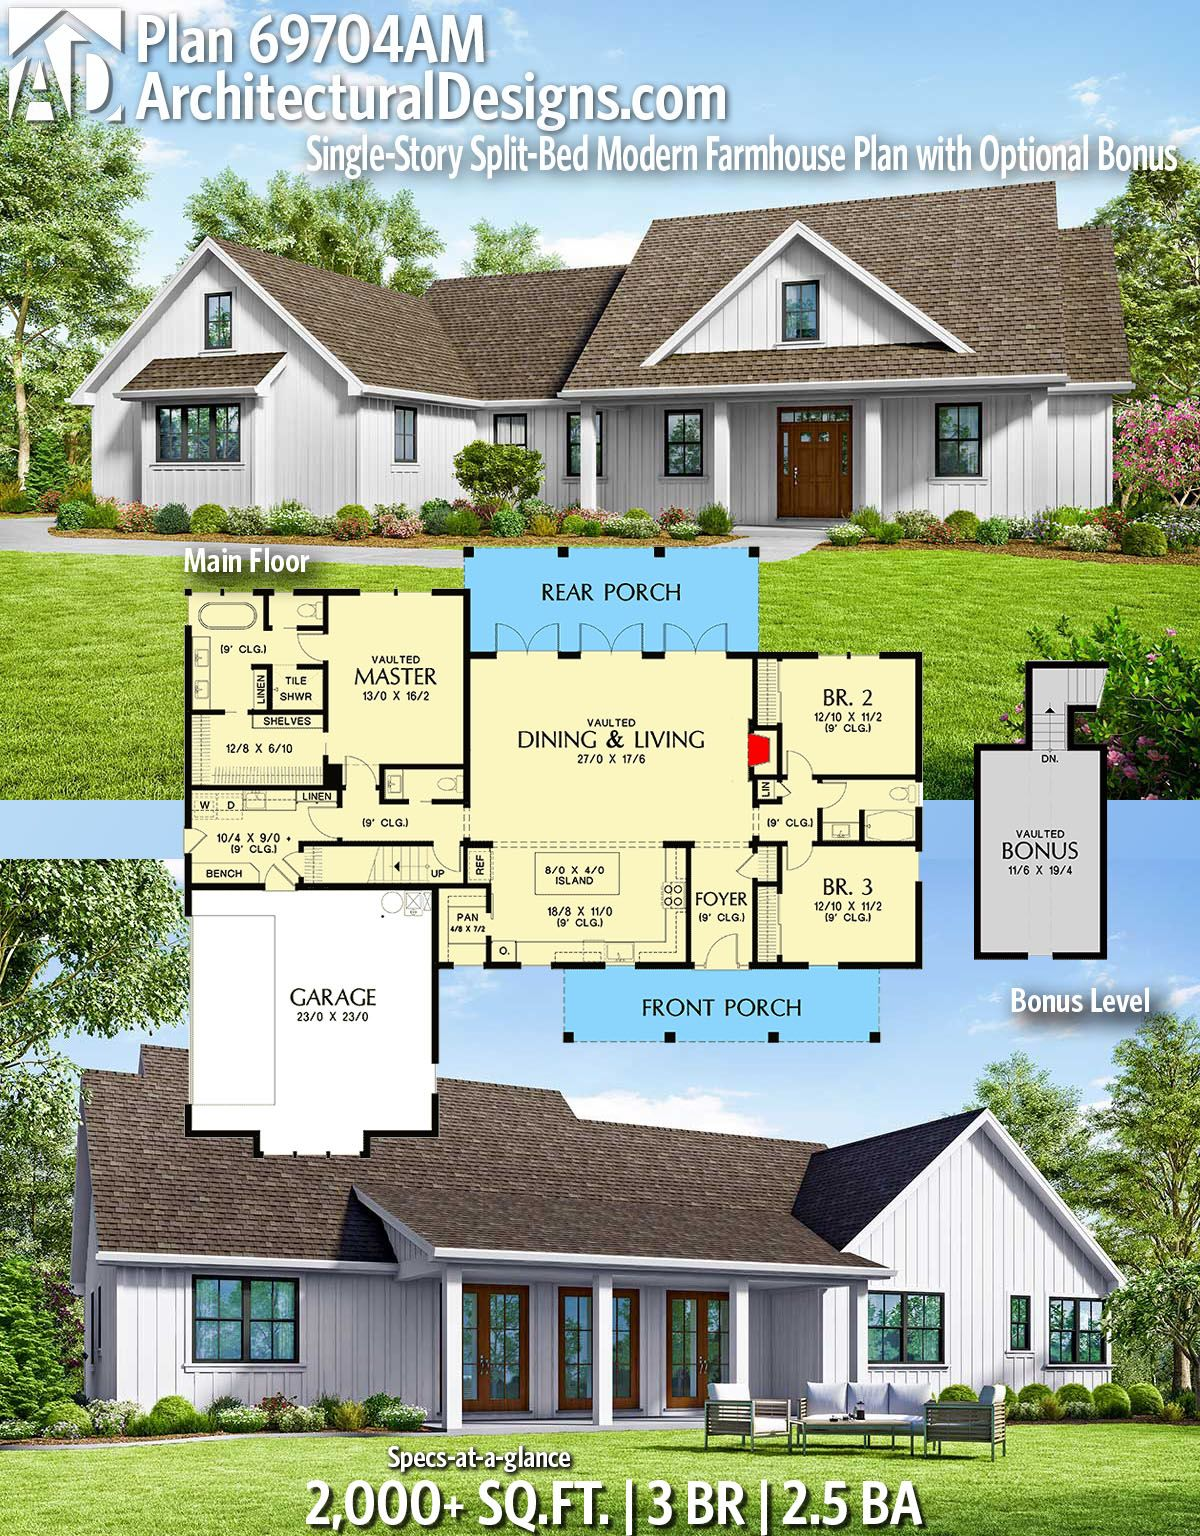 Architectural Designs Modern Farmhouse Plan 69704am Gives You 3 Bedrooms 2 5 Baths And 2 000 Sq Ft Modern Farmhouse Plans Farmhouse Plans Modern House Plans